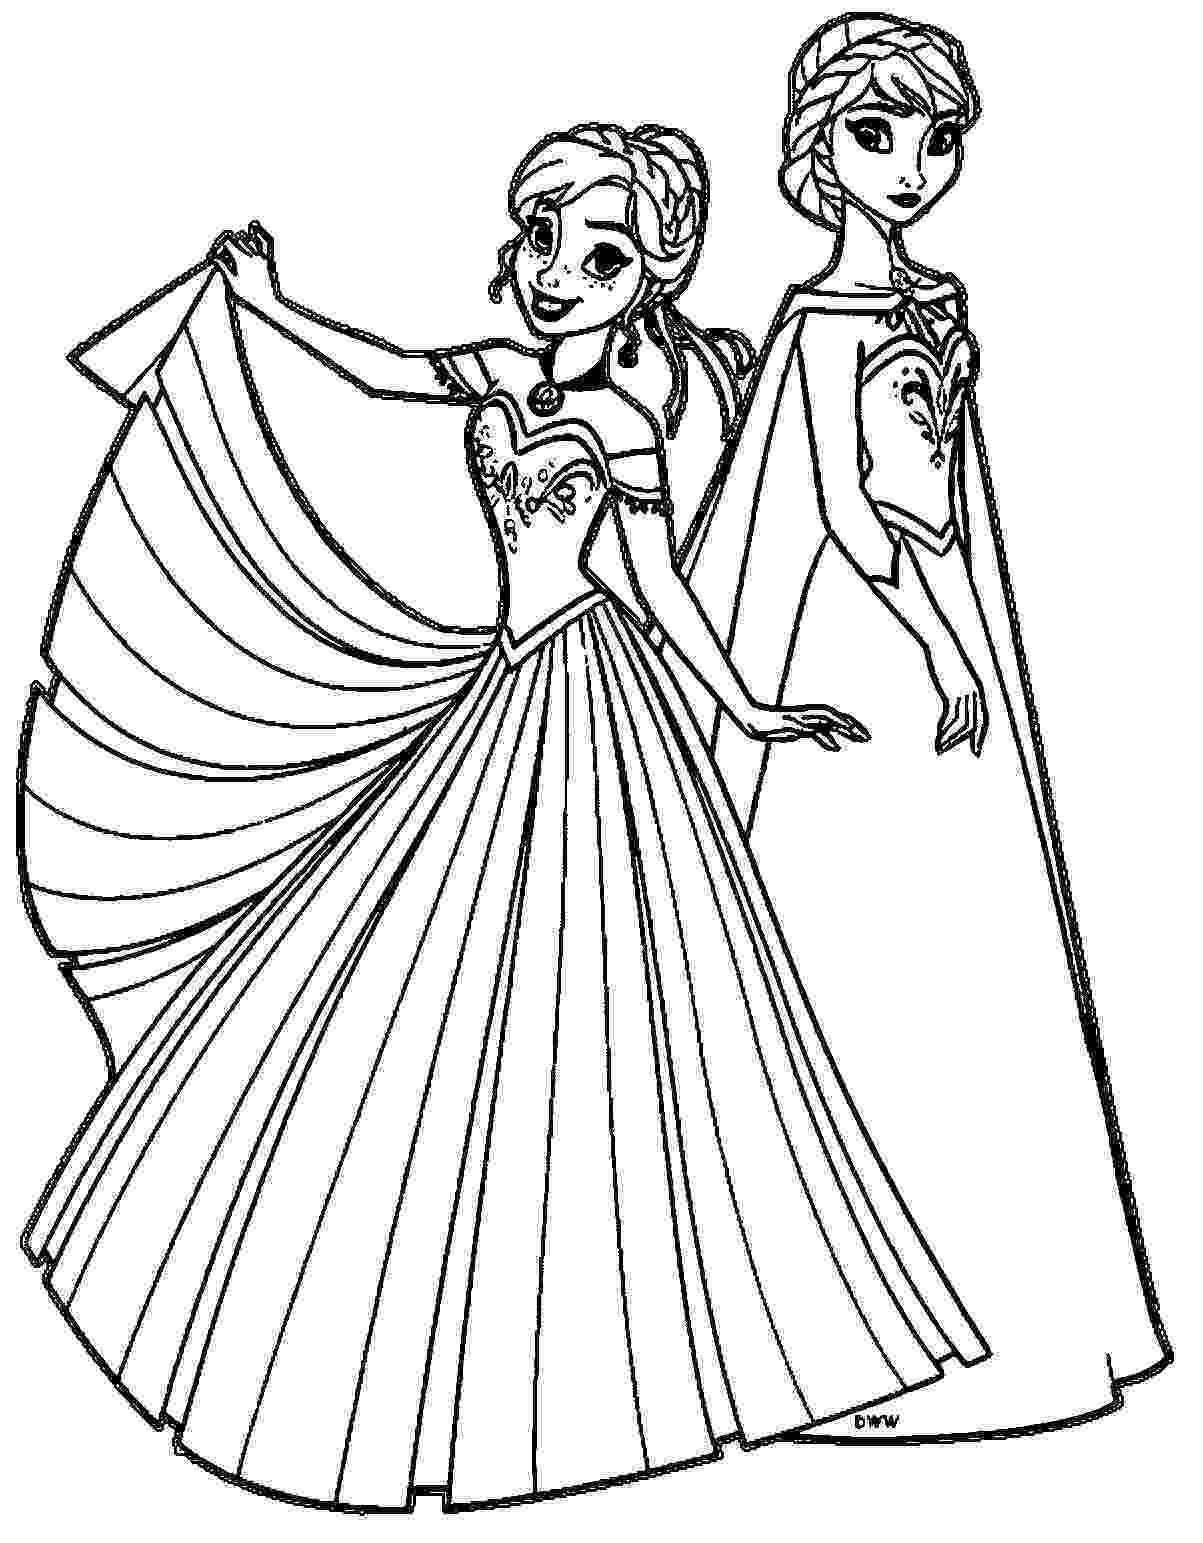 elsa and anna printables enjoy this awesome queen elsa coloring page just print printables elsa anna and